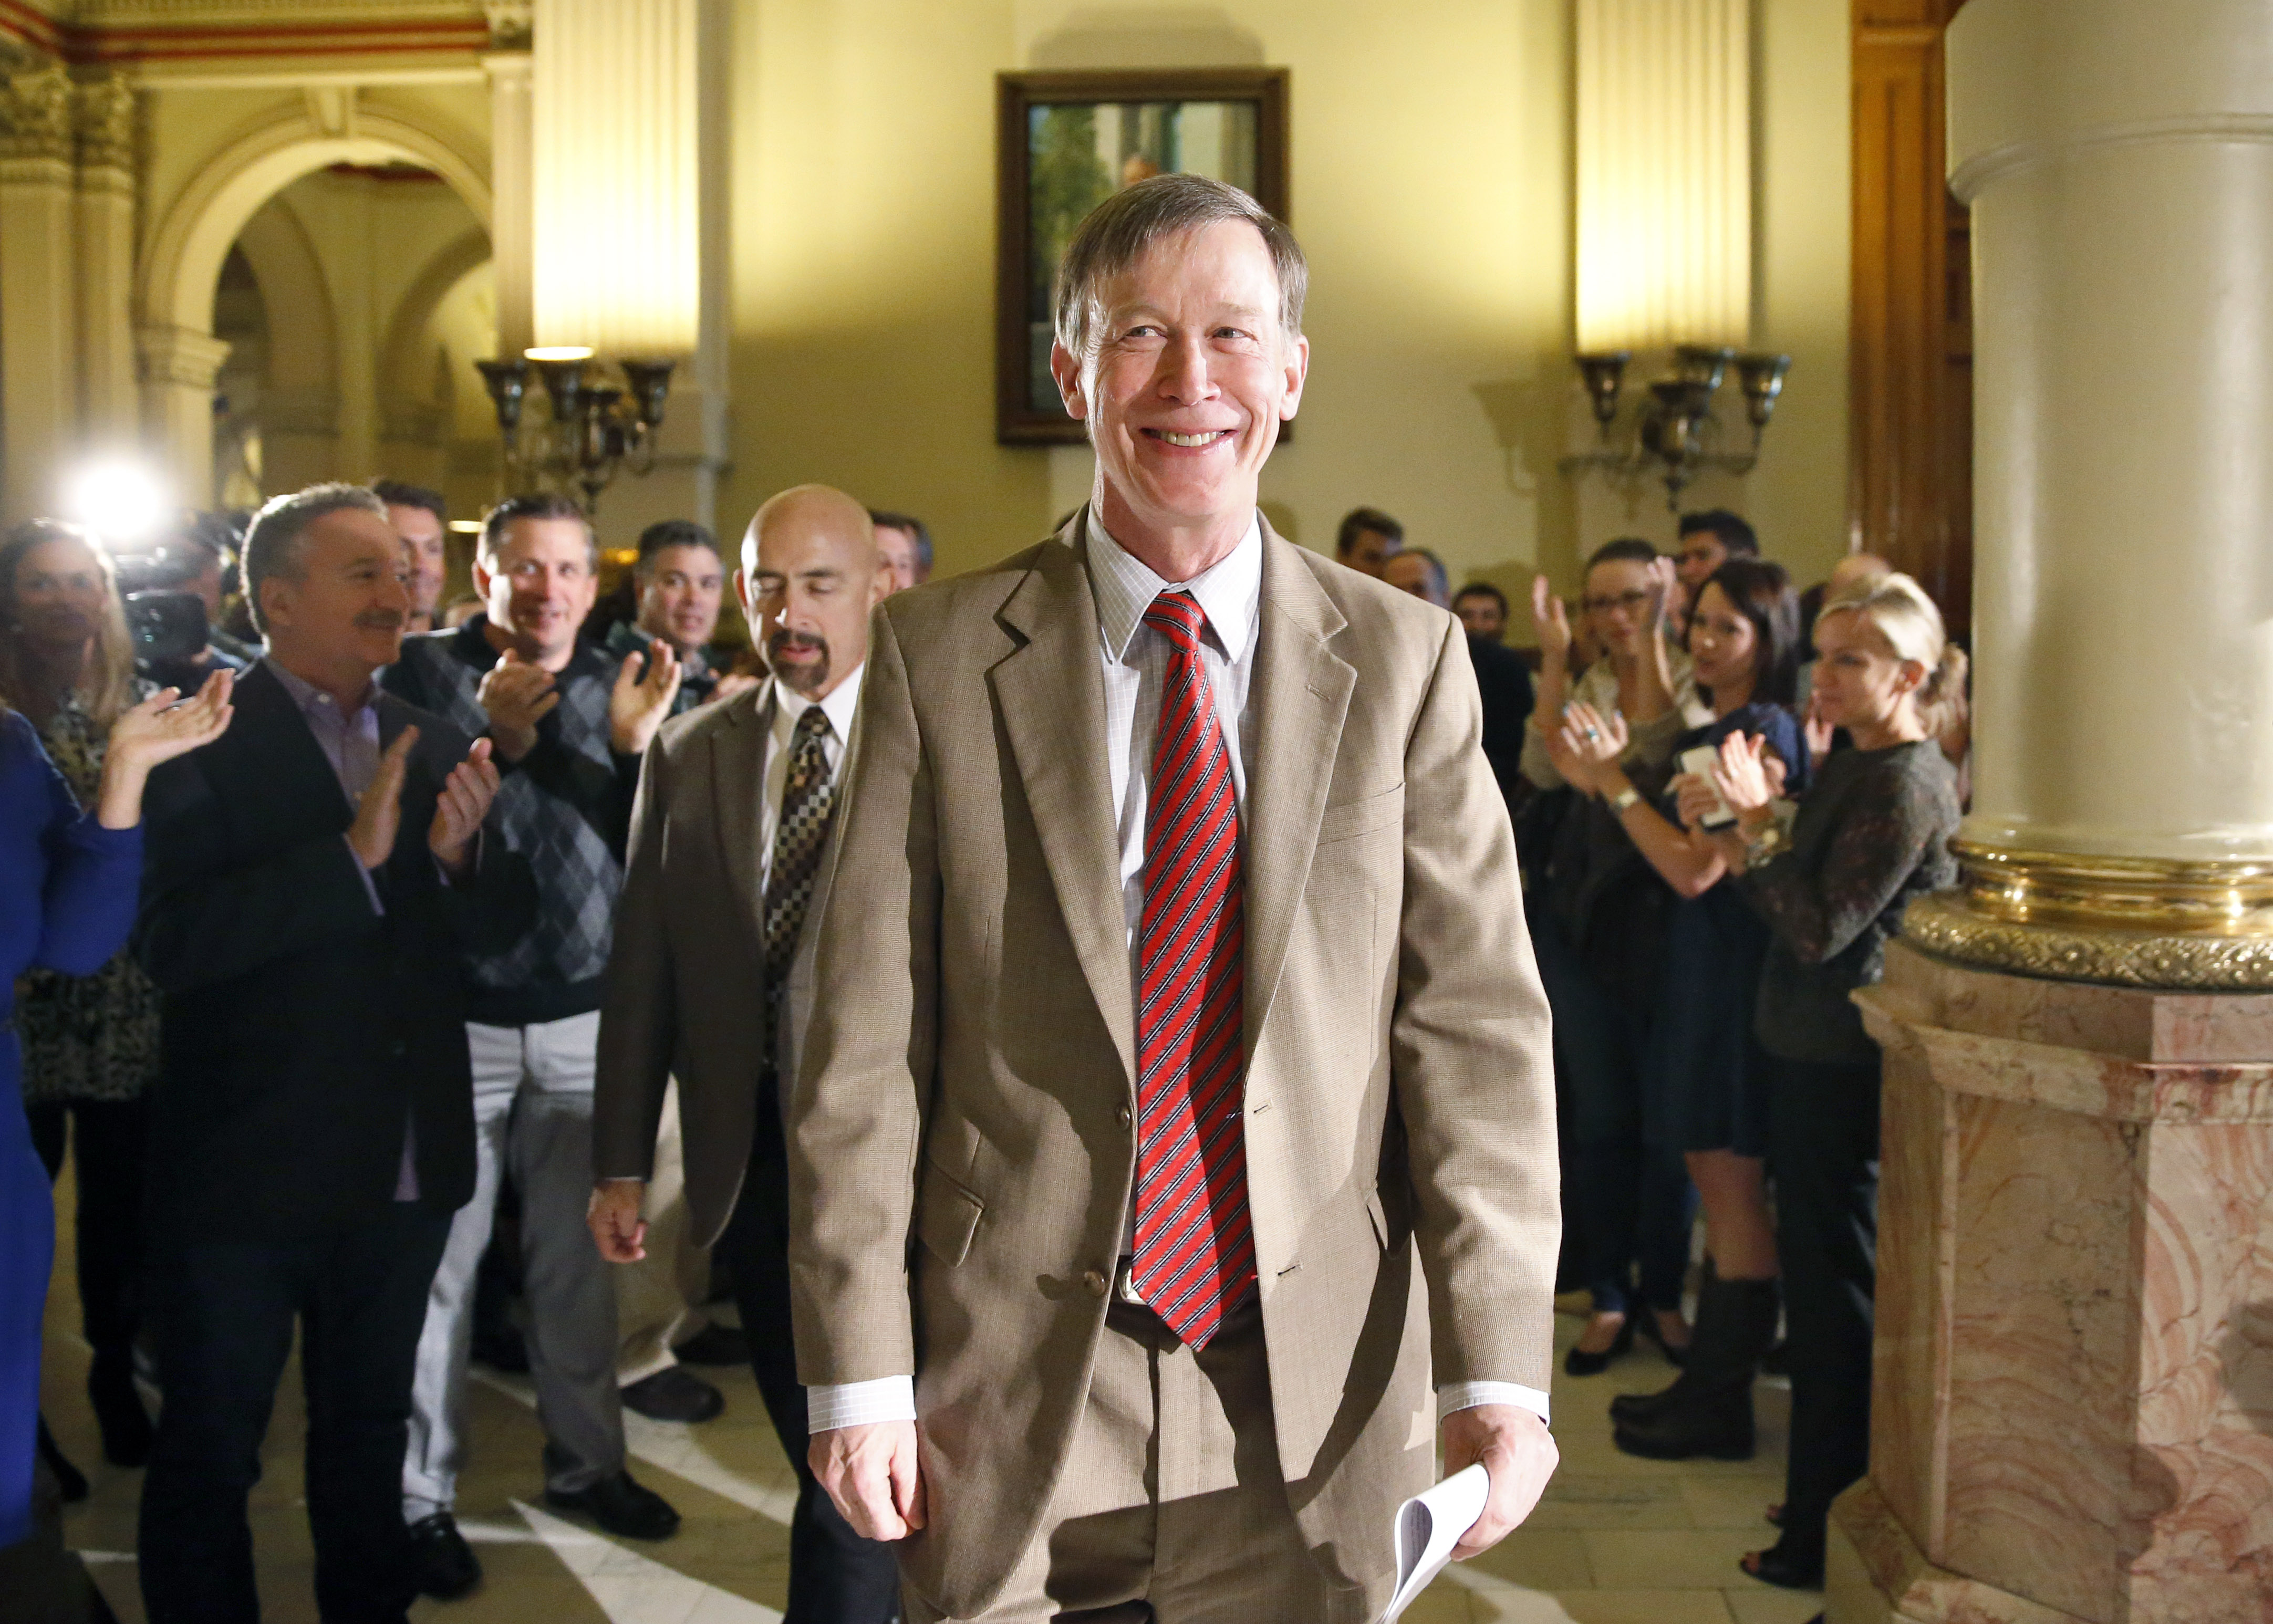 Photo: Colorado Gov. John Hickenlooper gives victory speech (AP Photo)